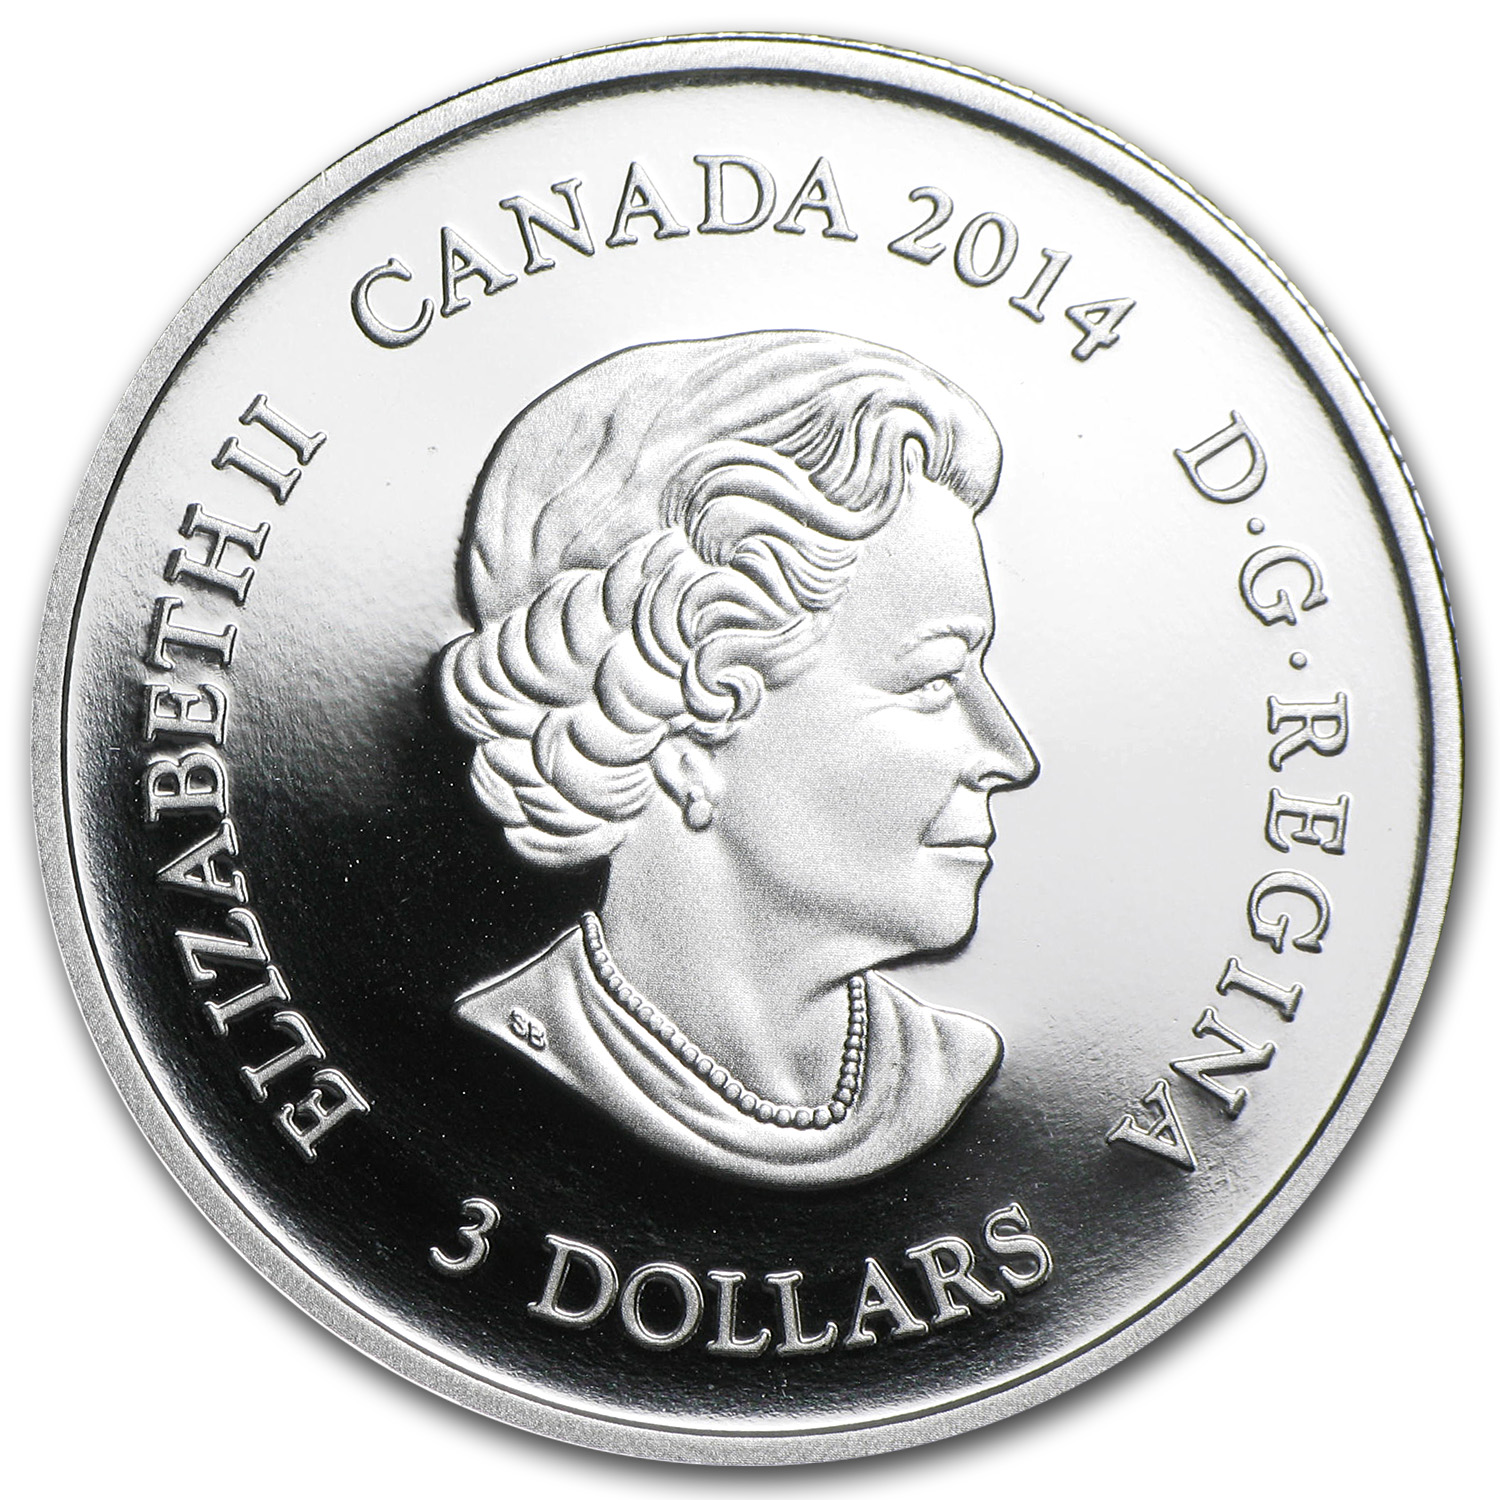 2014 Canada 1/4 oz Silver $3 Jewel of Life Proof (Gilded)